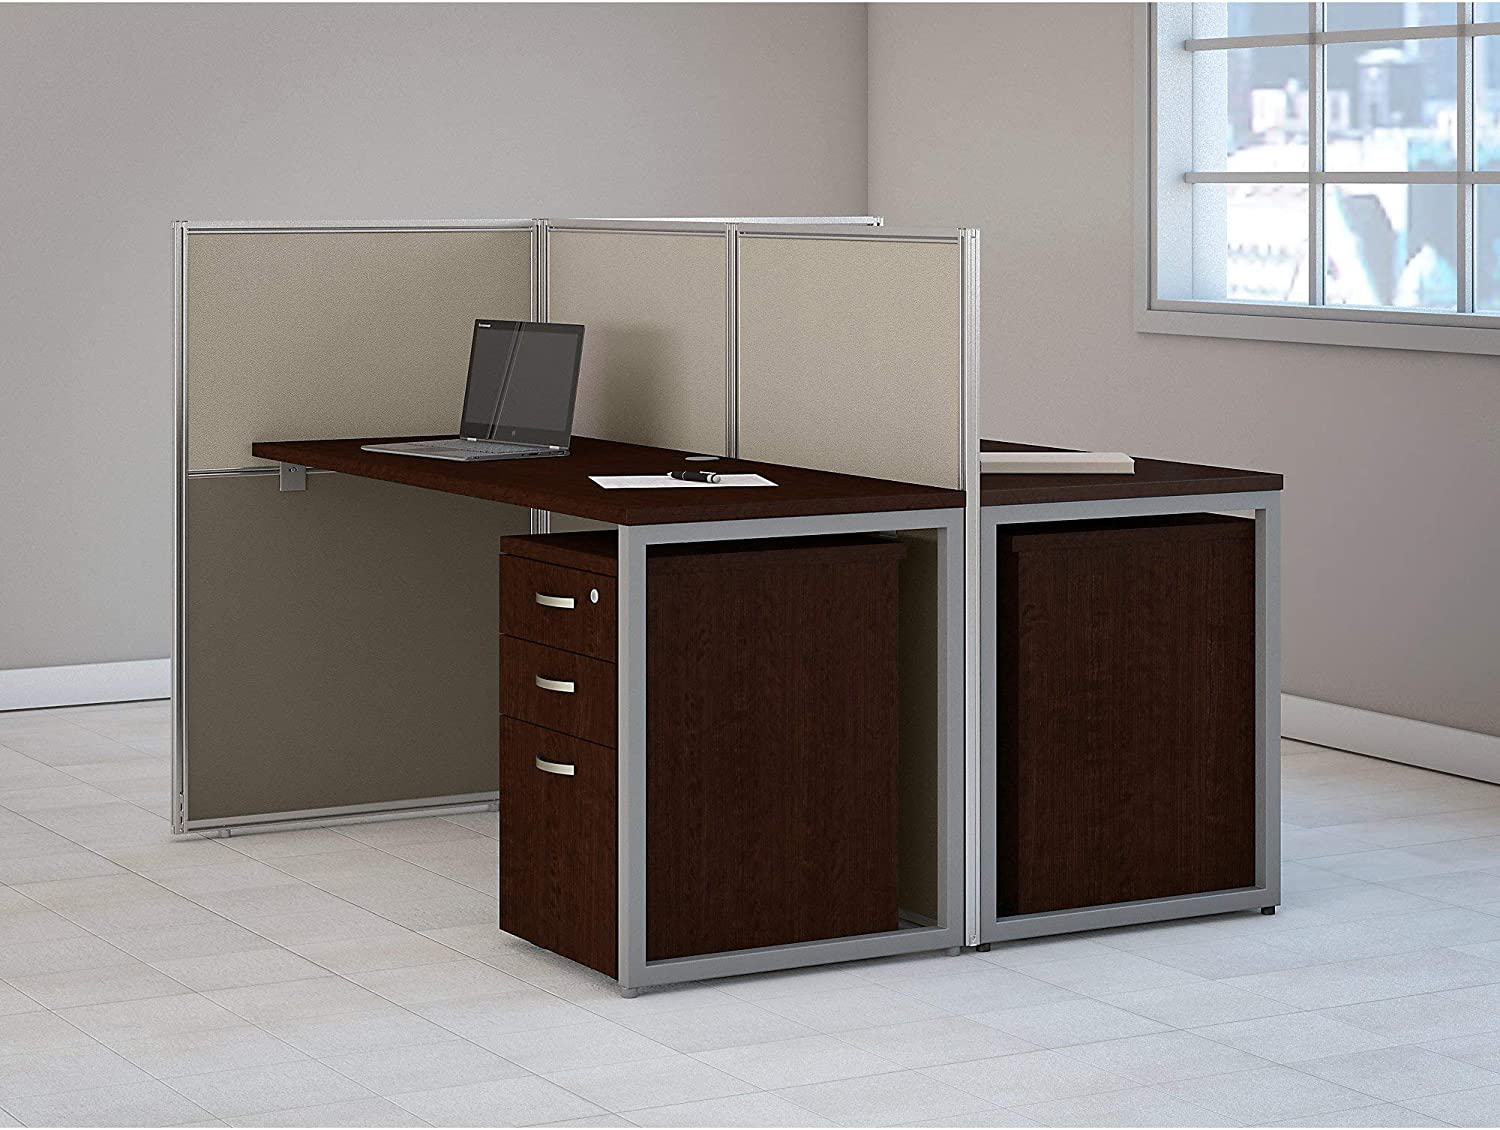 Bush Business Furniture Easy Office 60W Two Person Straight Desk Open Office with Mobile File Cabinets in Mocha Cherry